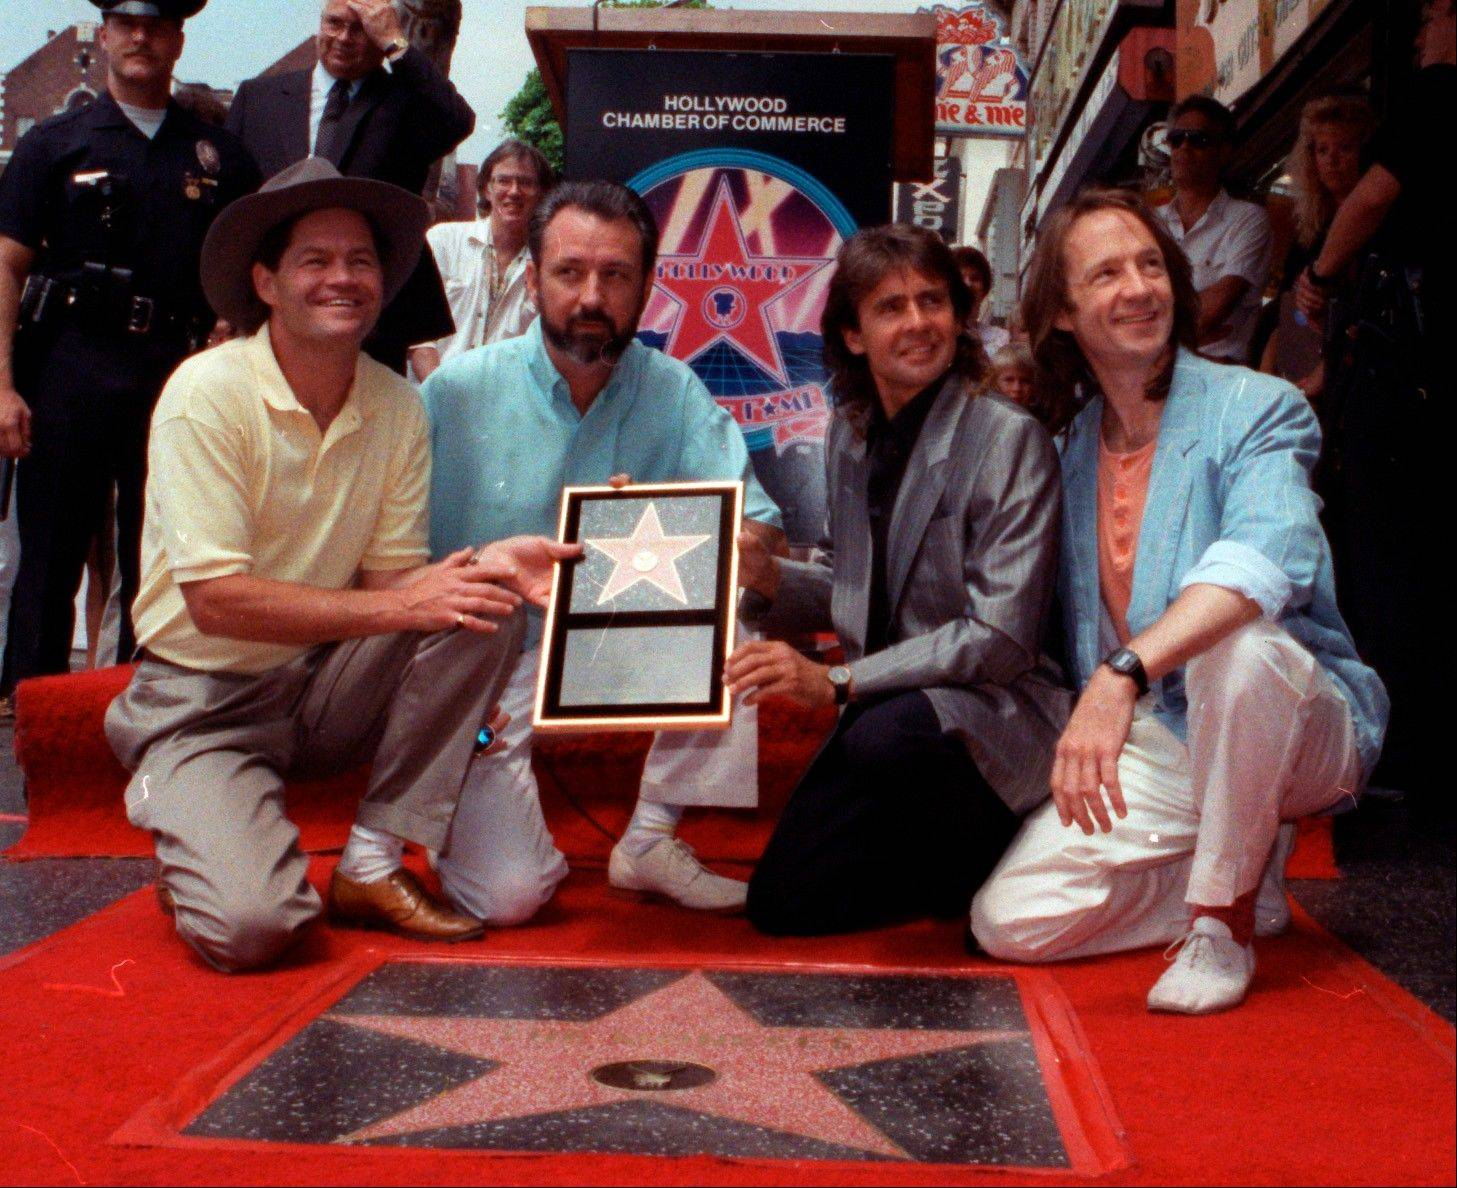 In this July 10, 1989 file photo, The Monkees, from left: Micky Dolenz, Mike Nesmith, Davy Jones and Peter Tork get a star on the Hollywood Walk of Fame in Los Angeles.